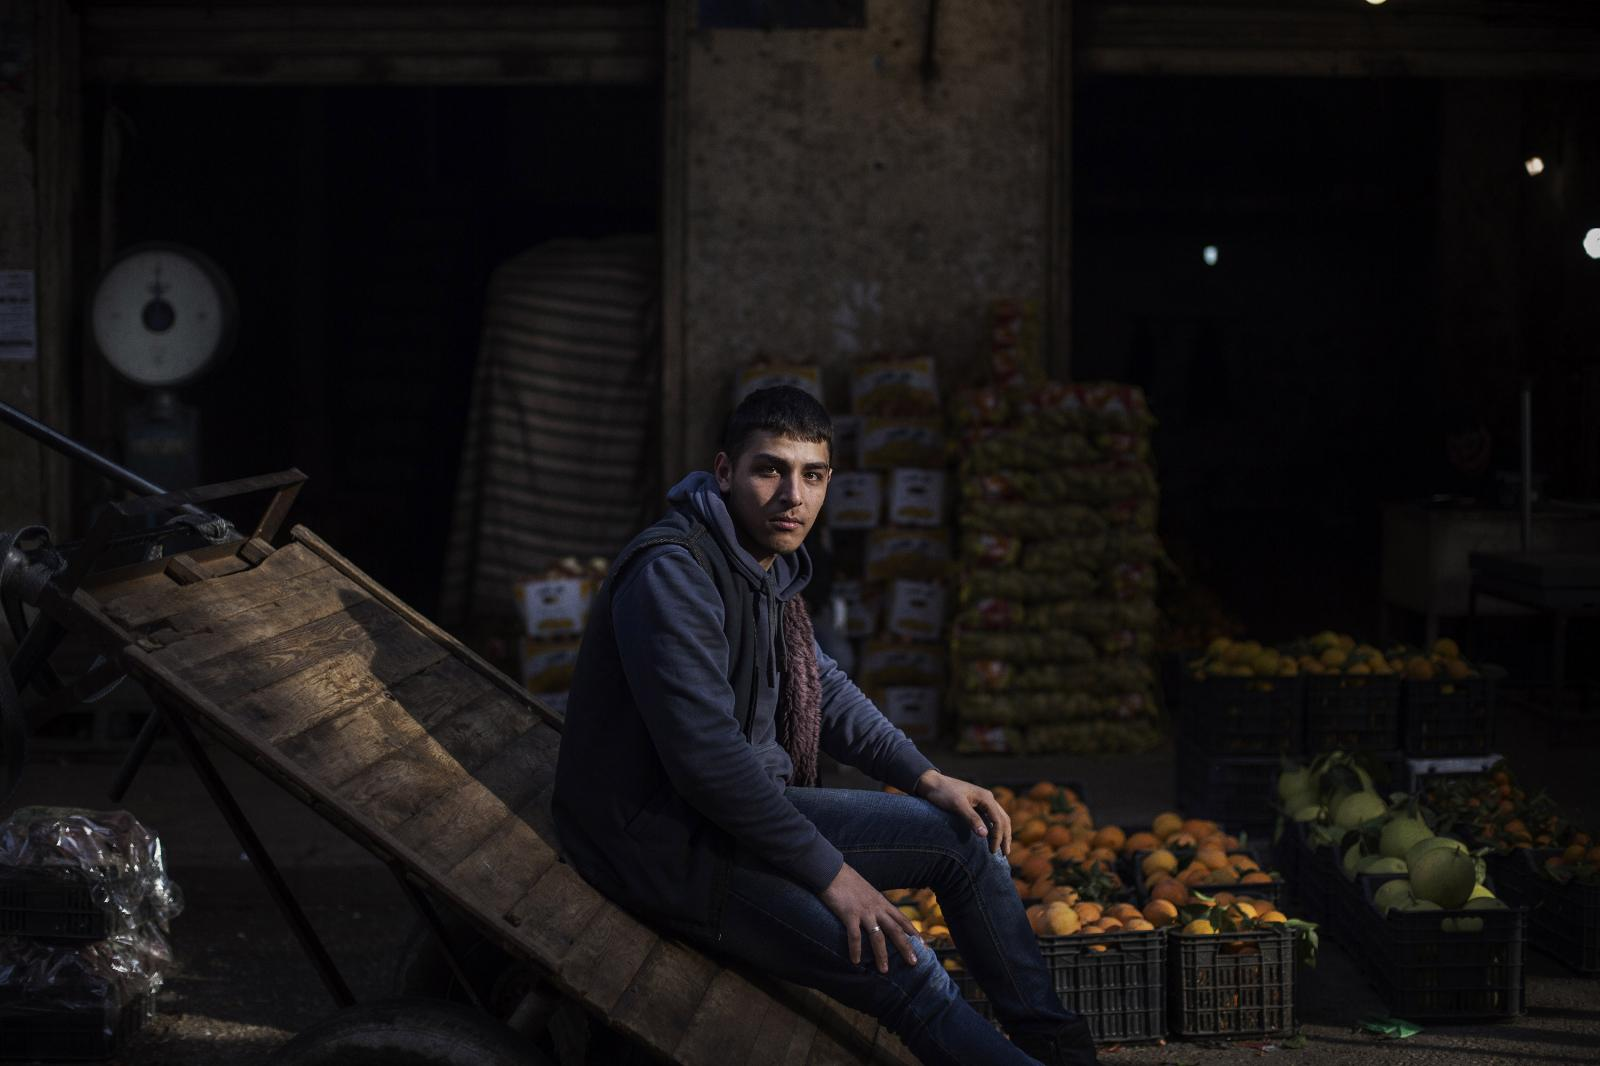 """Radwan Rashid, 19 years old from Idlib, Syria. Dropped out of school three years ago and does odd jobs at the souk. """"We fled to here and now we want to flee from here."""" Bab al-Tabbaneh, Tripoli. Lebanon. December 11th, 2019. Diego Ibarra Sánchez for CNN"""